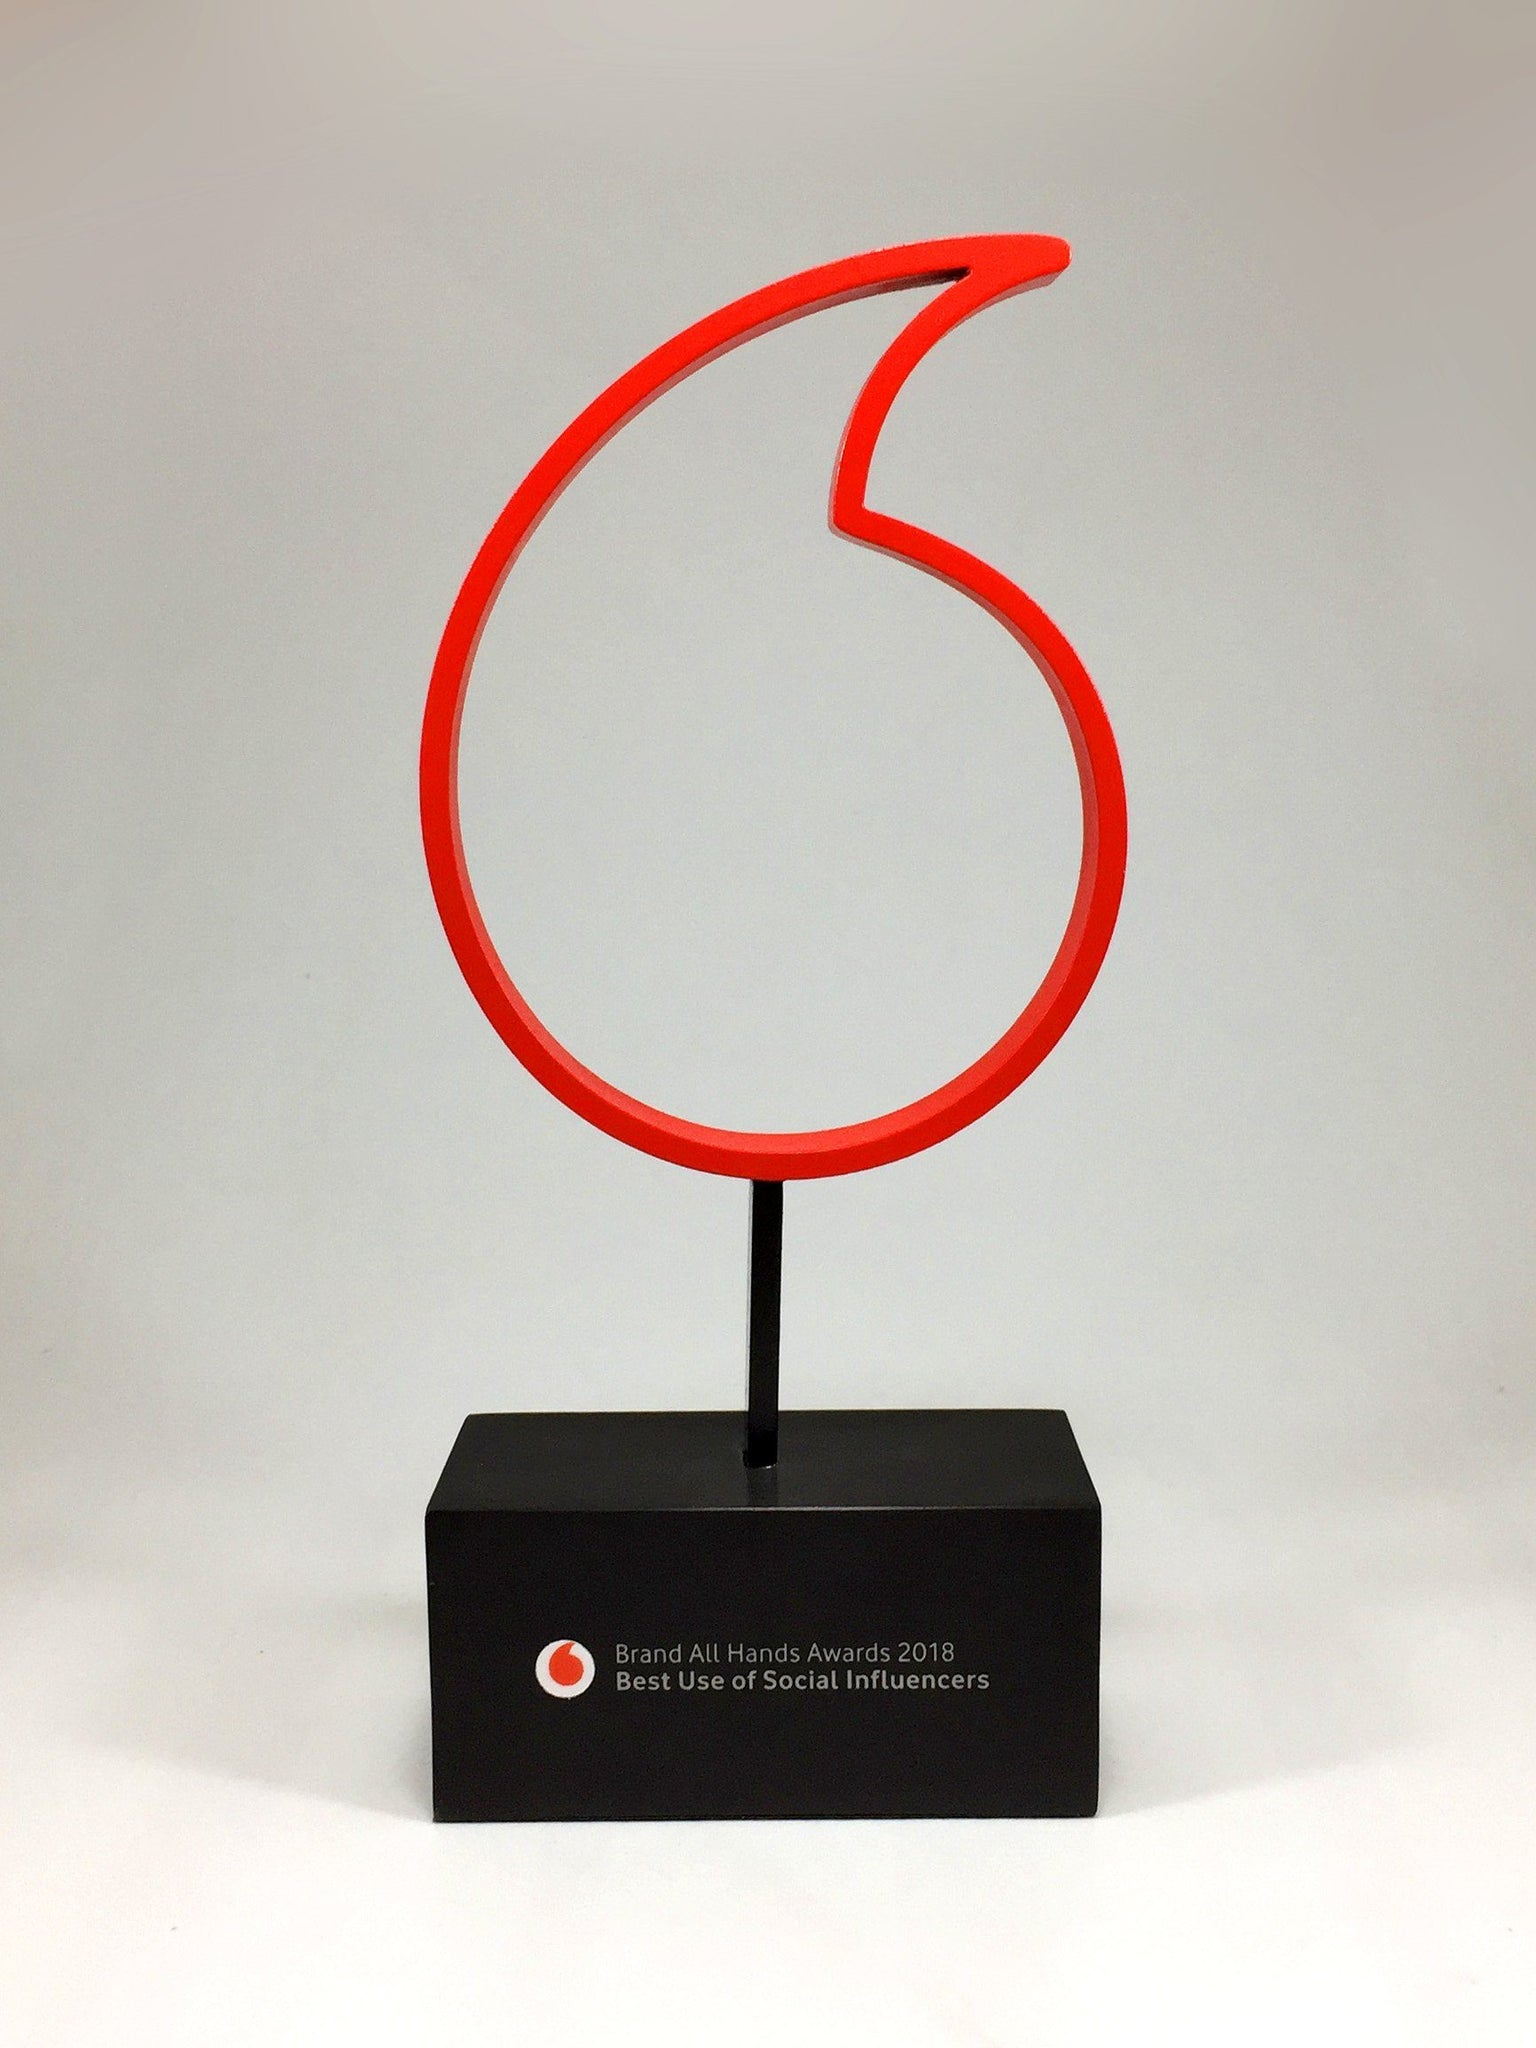 Red Vodafone Award Bespoke Metal Award Creative Awards